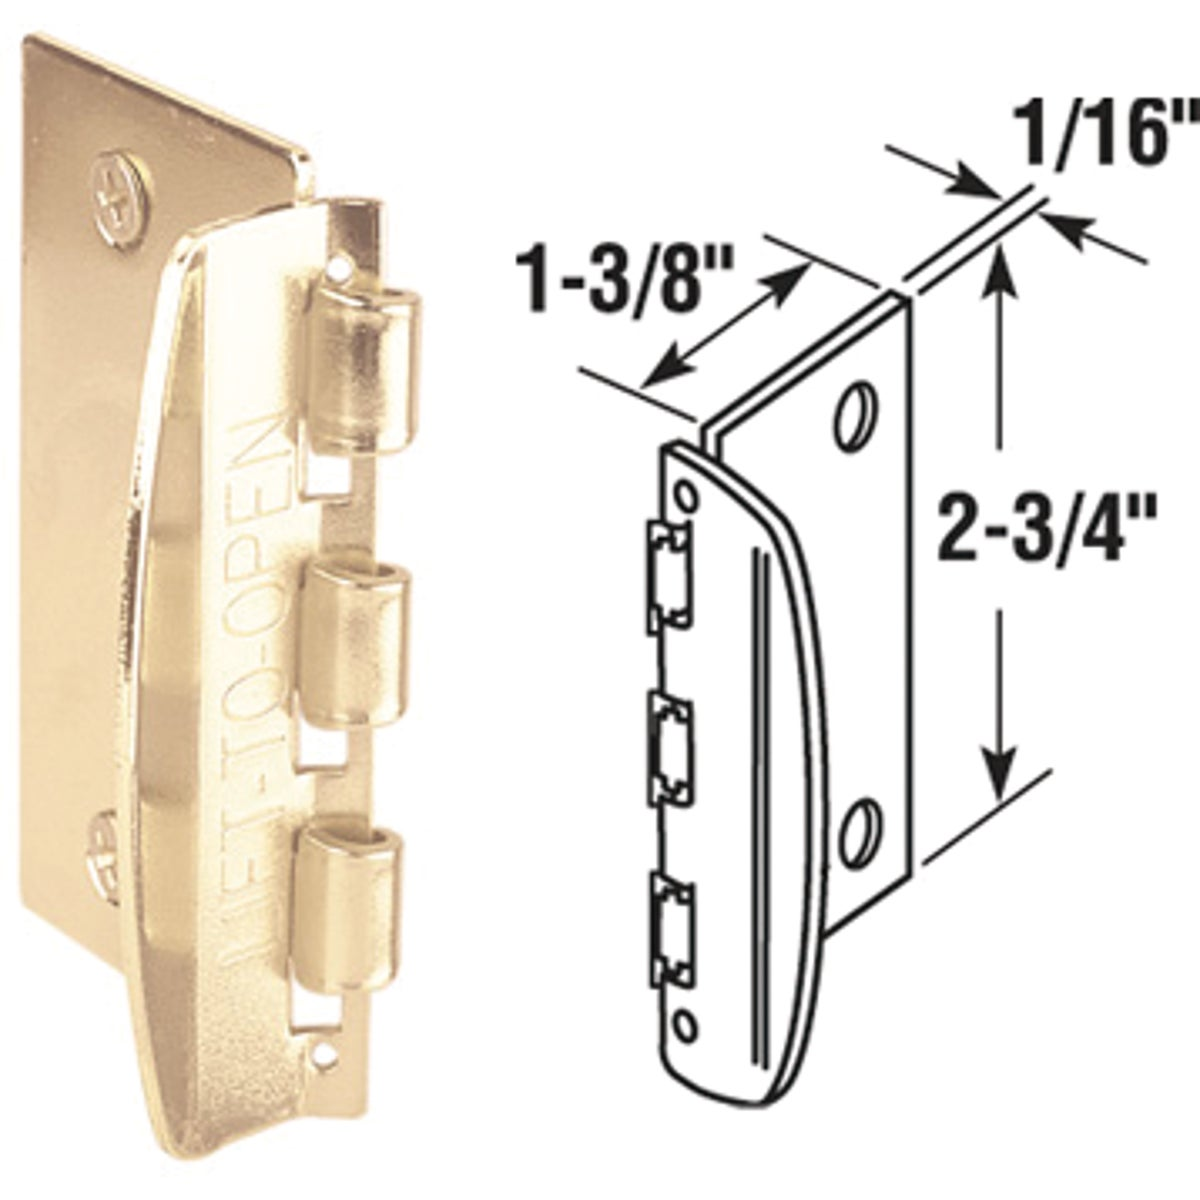 FLIP OVER DOOR LOCK - U 9887 by Prime Line Products